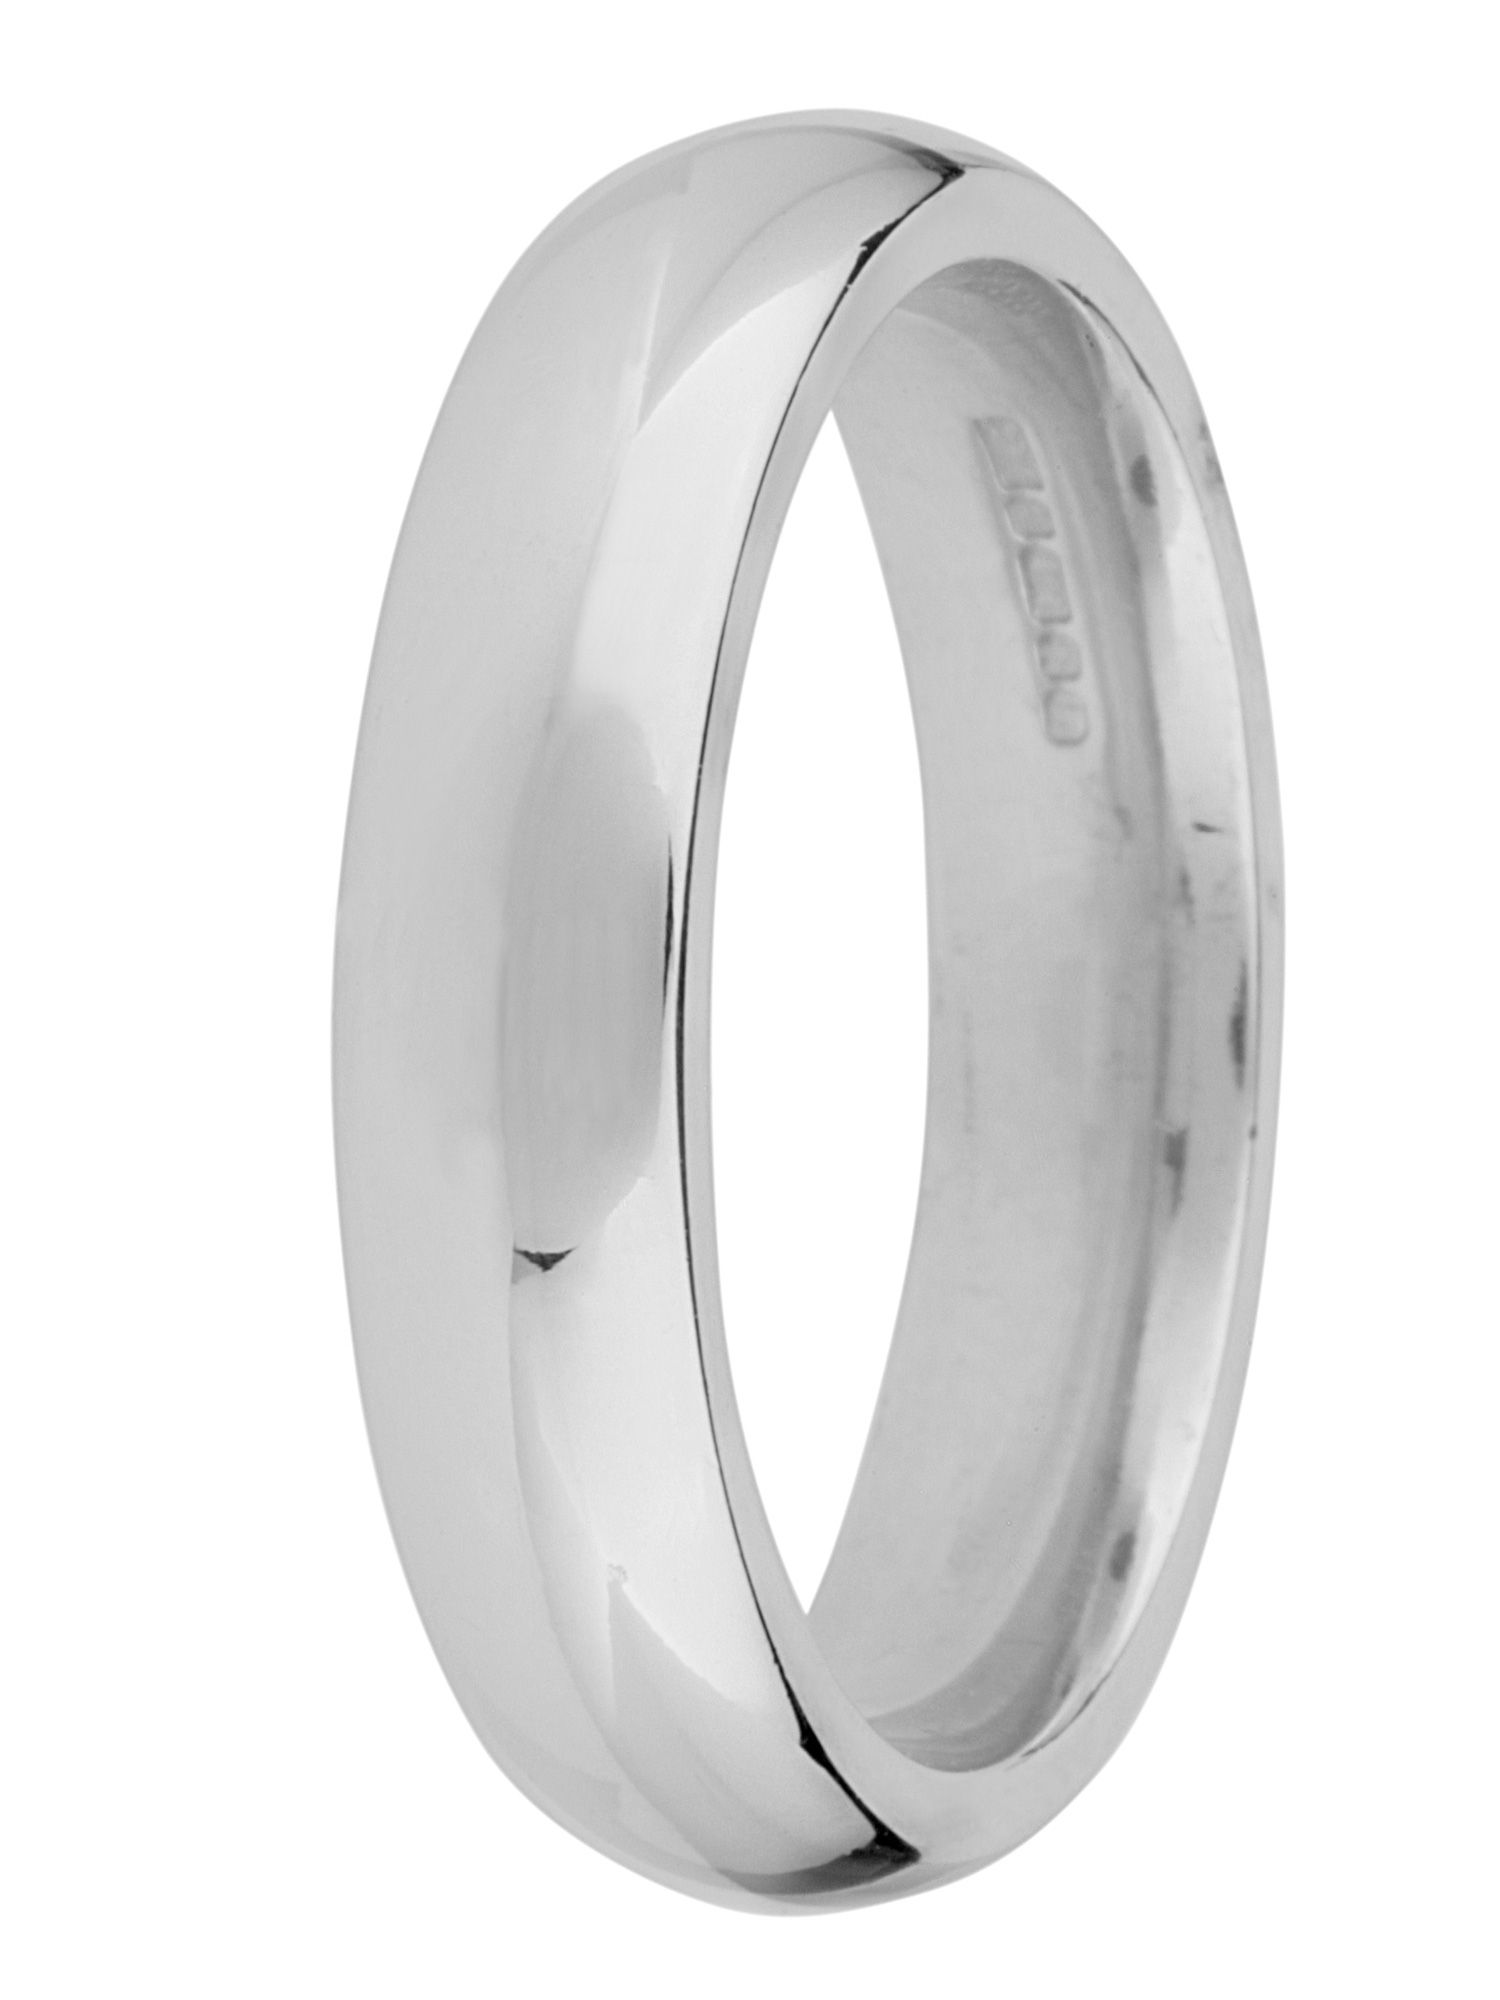 Goldsmiths Brides 18ct gold 5mm court wedding ring, White Gold